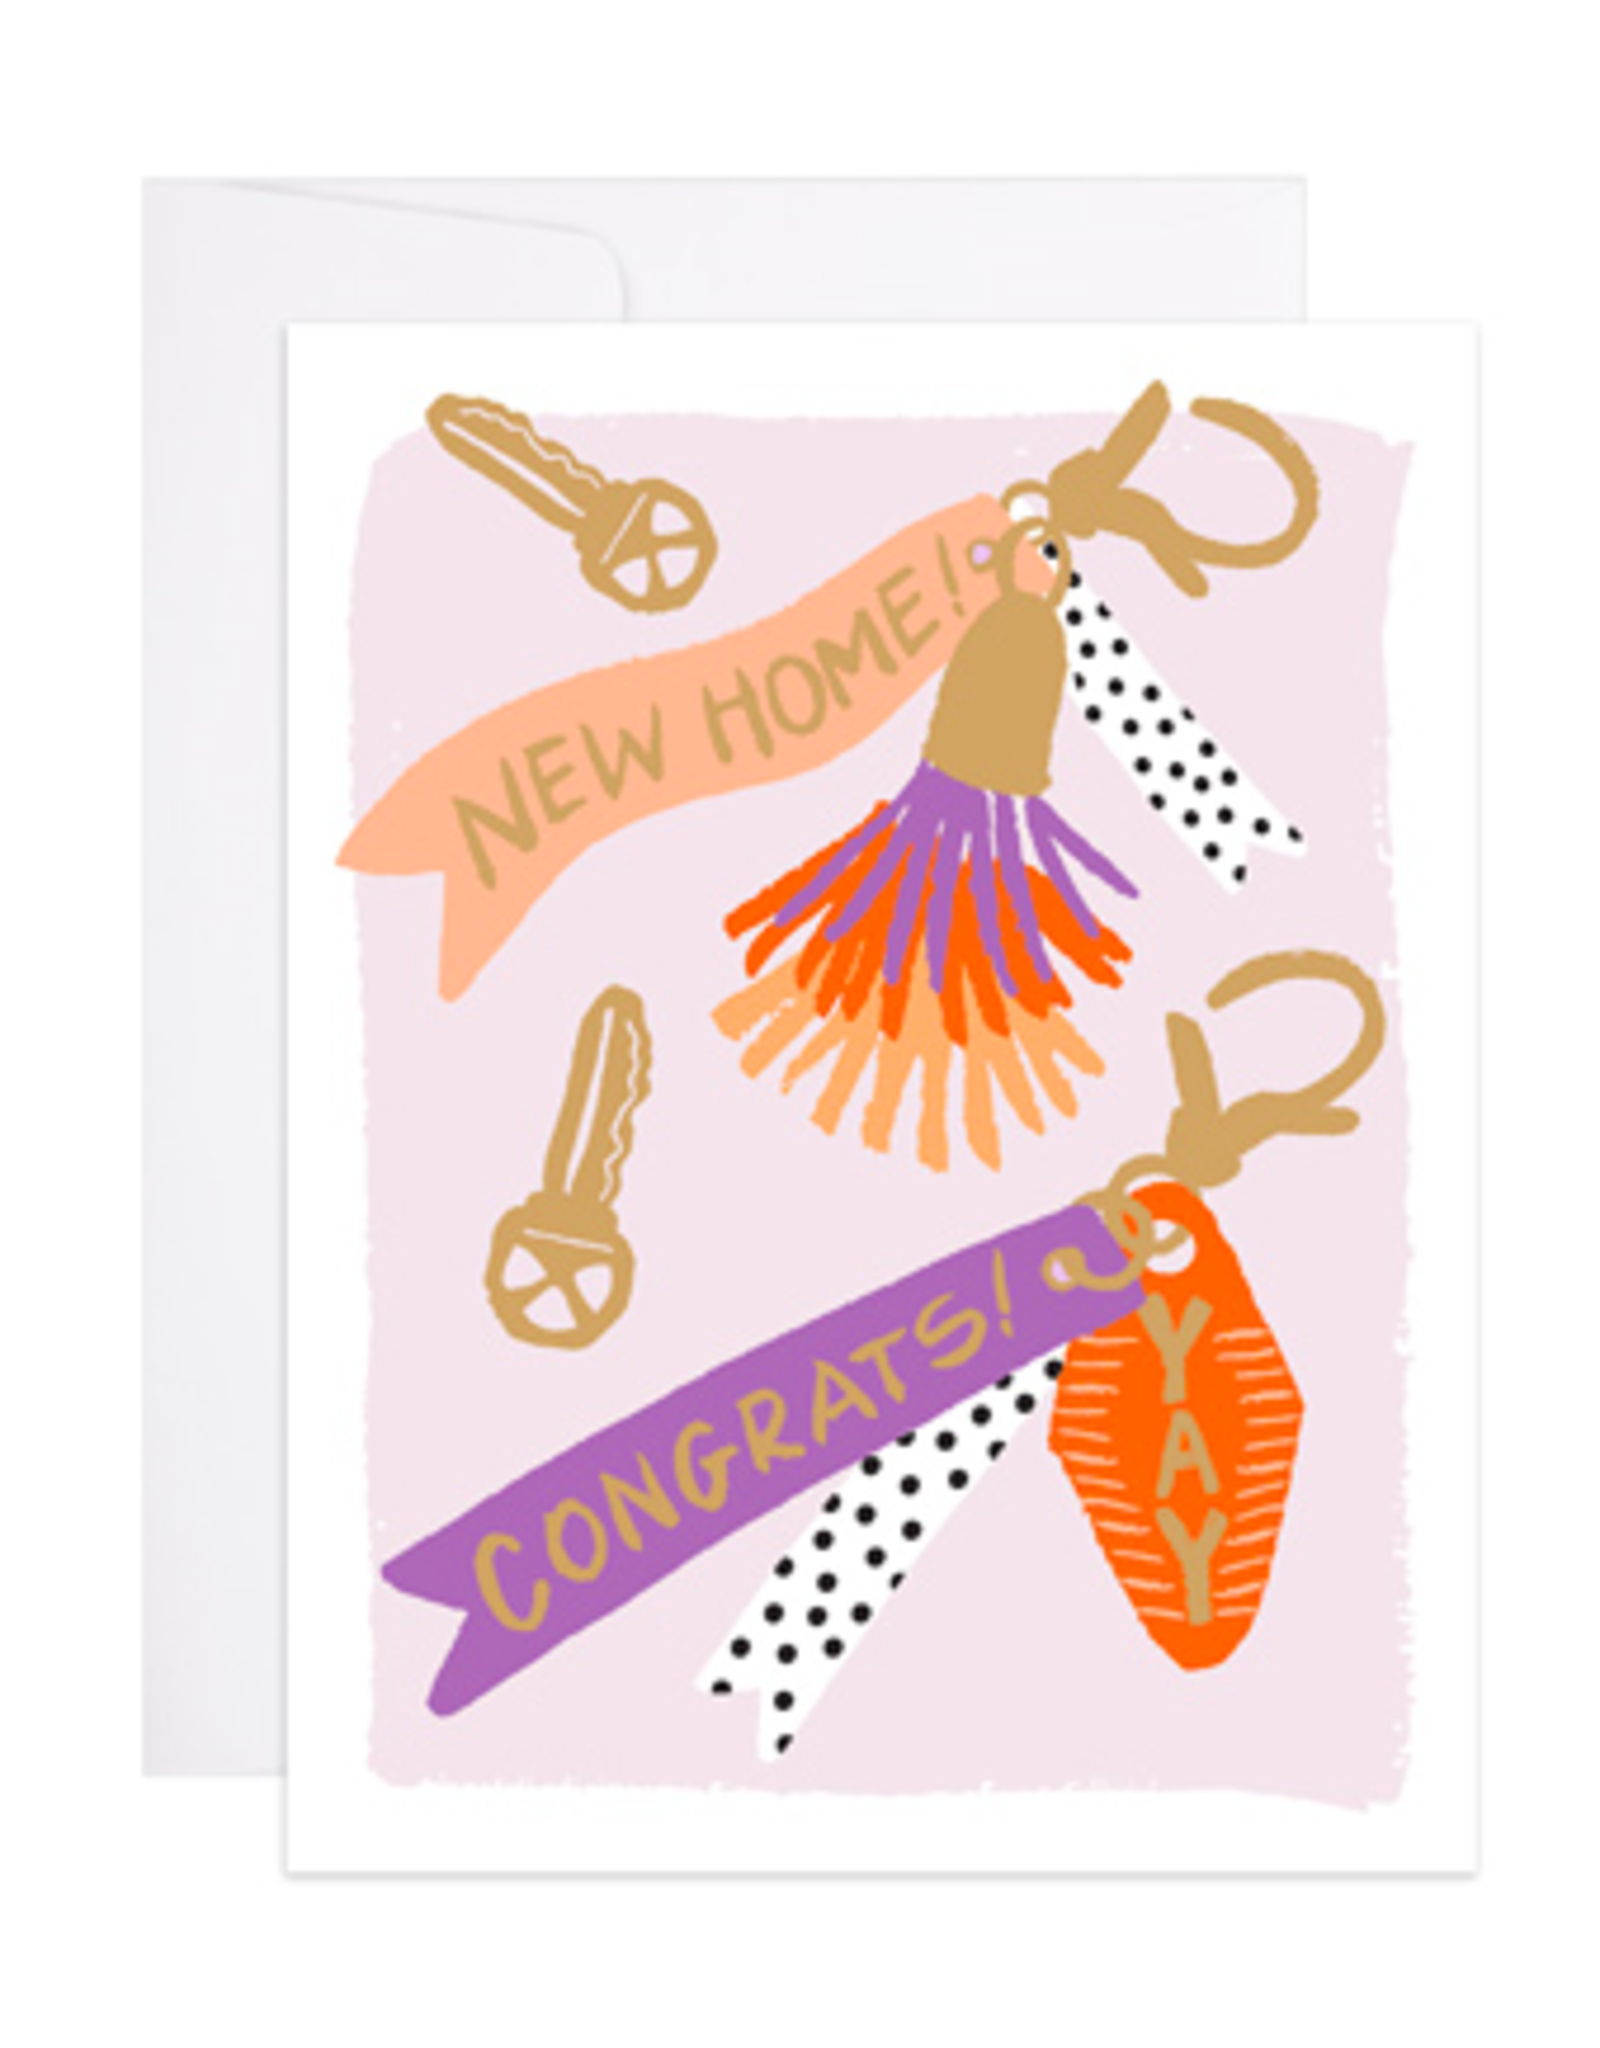 9th Letterpress New Home Keychain Card